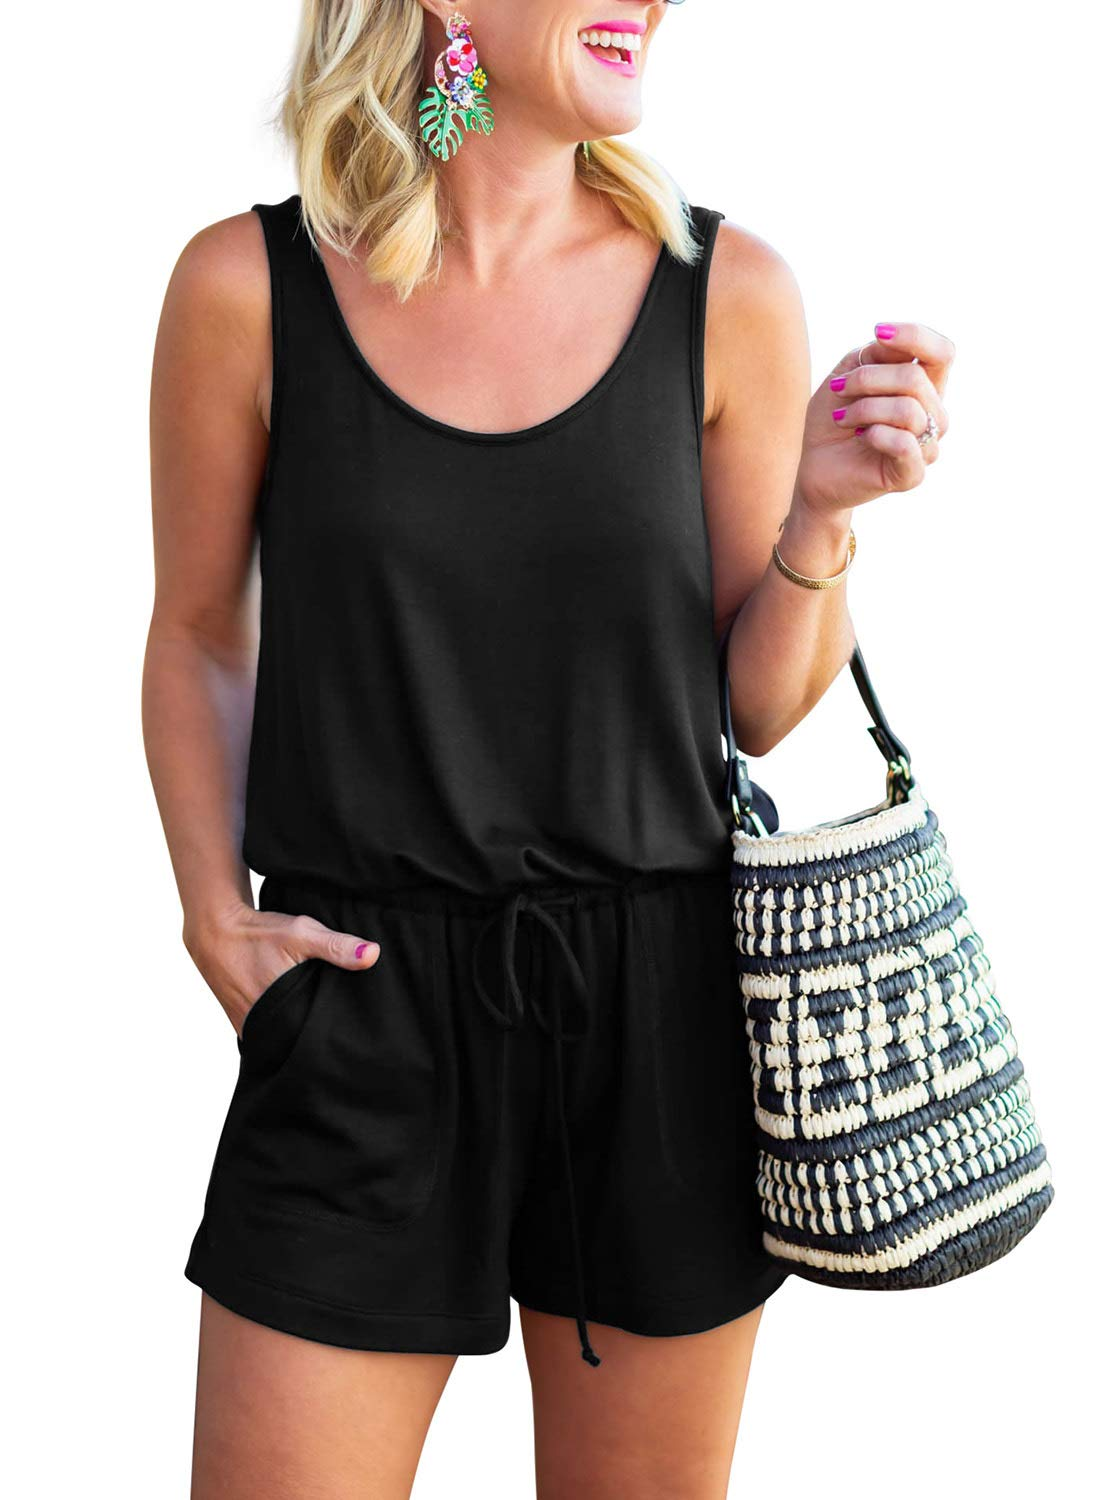 REORIA Womens Casual Summer One Piece Sleeveless Tank Top Playsuits Short Jumpsuit Beach Rompers Black Medium by REORIA